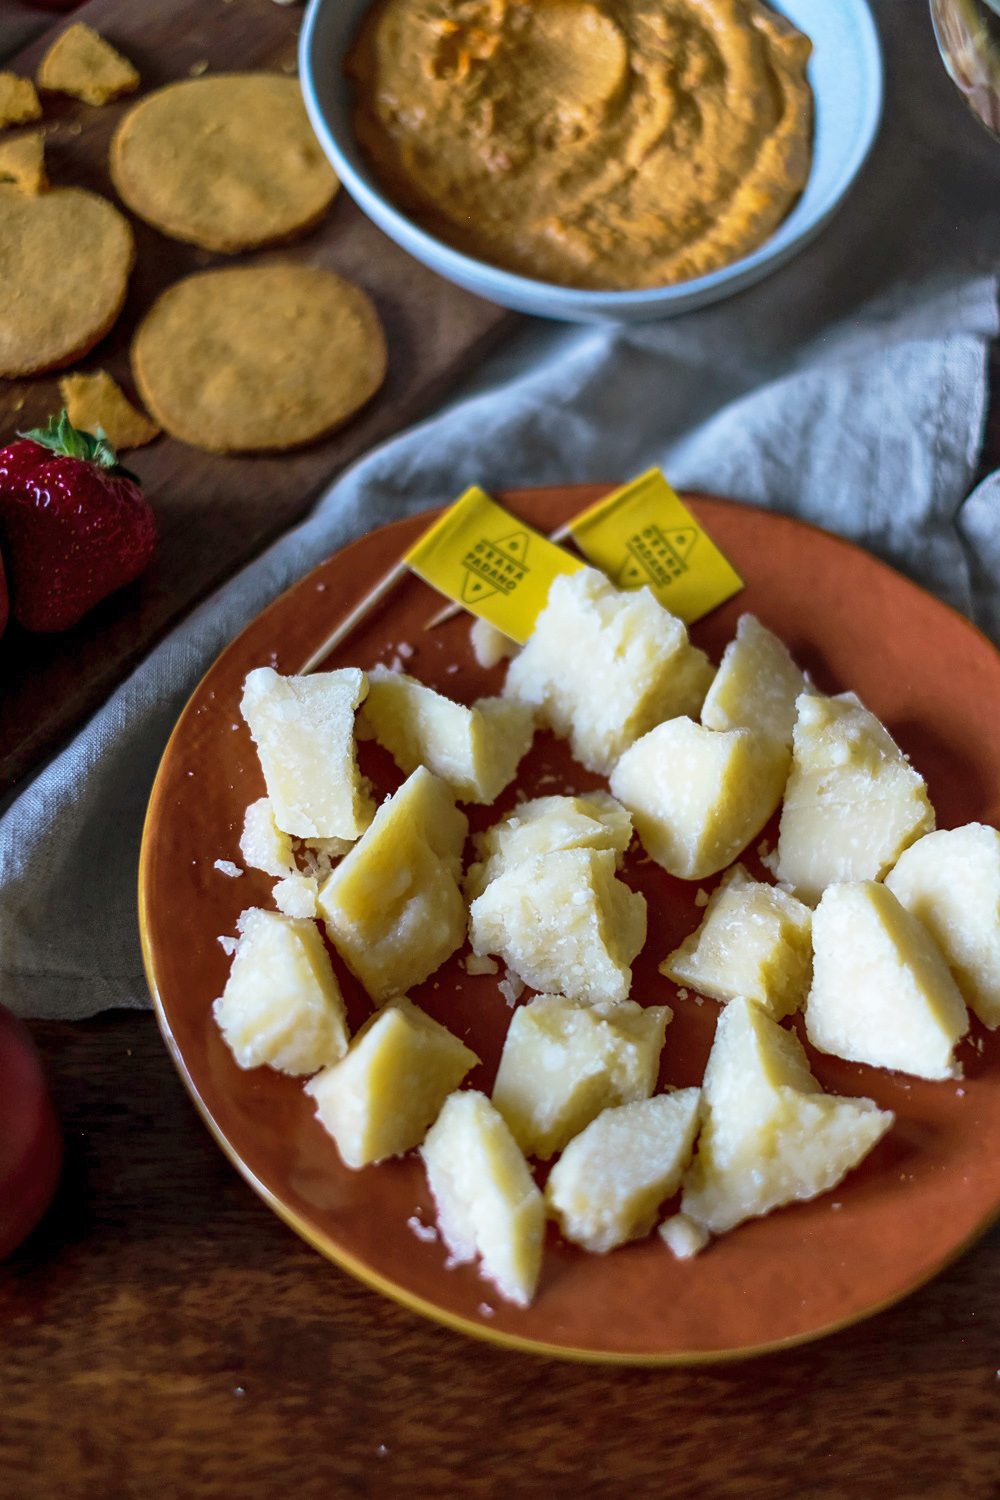 An Italian Aperitivo with Grana Padano | What makes Grana Padano special? First of all, its unique taste: it has a fragrant yet delicate taste with notes of butter, hay and dried fruit. It also has great nutritional qualities and contains a high concentration of vitamins, proteins, minerals and calcium. Grana Padanois recognised as a Protected Designation of Origin (PDO) product from a particular area in Northern Italy (Pianura Padana, Po River Valley).